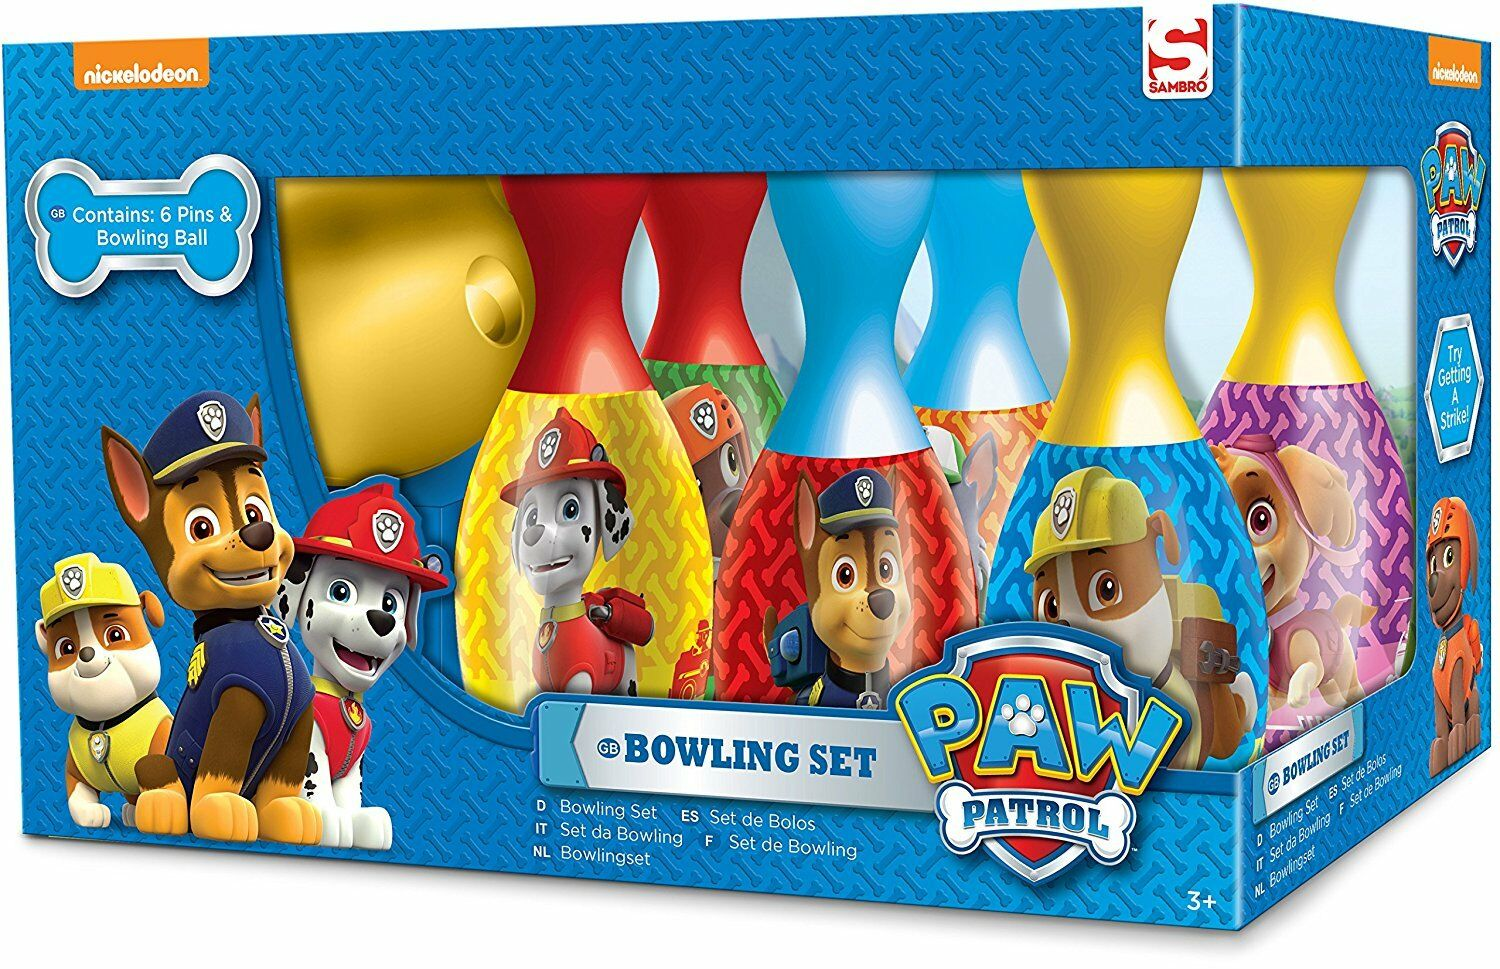 Kids Paw Patrol Bowling Set Skittles Pins Toy Indoor Outdoor Ball Game Fun Gift